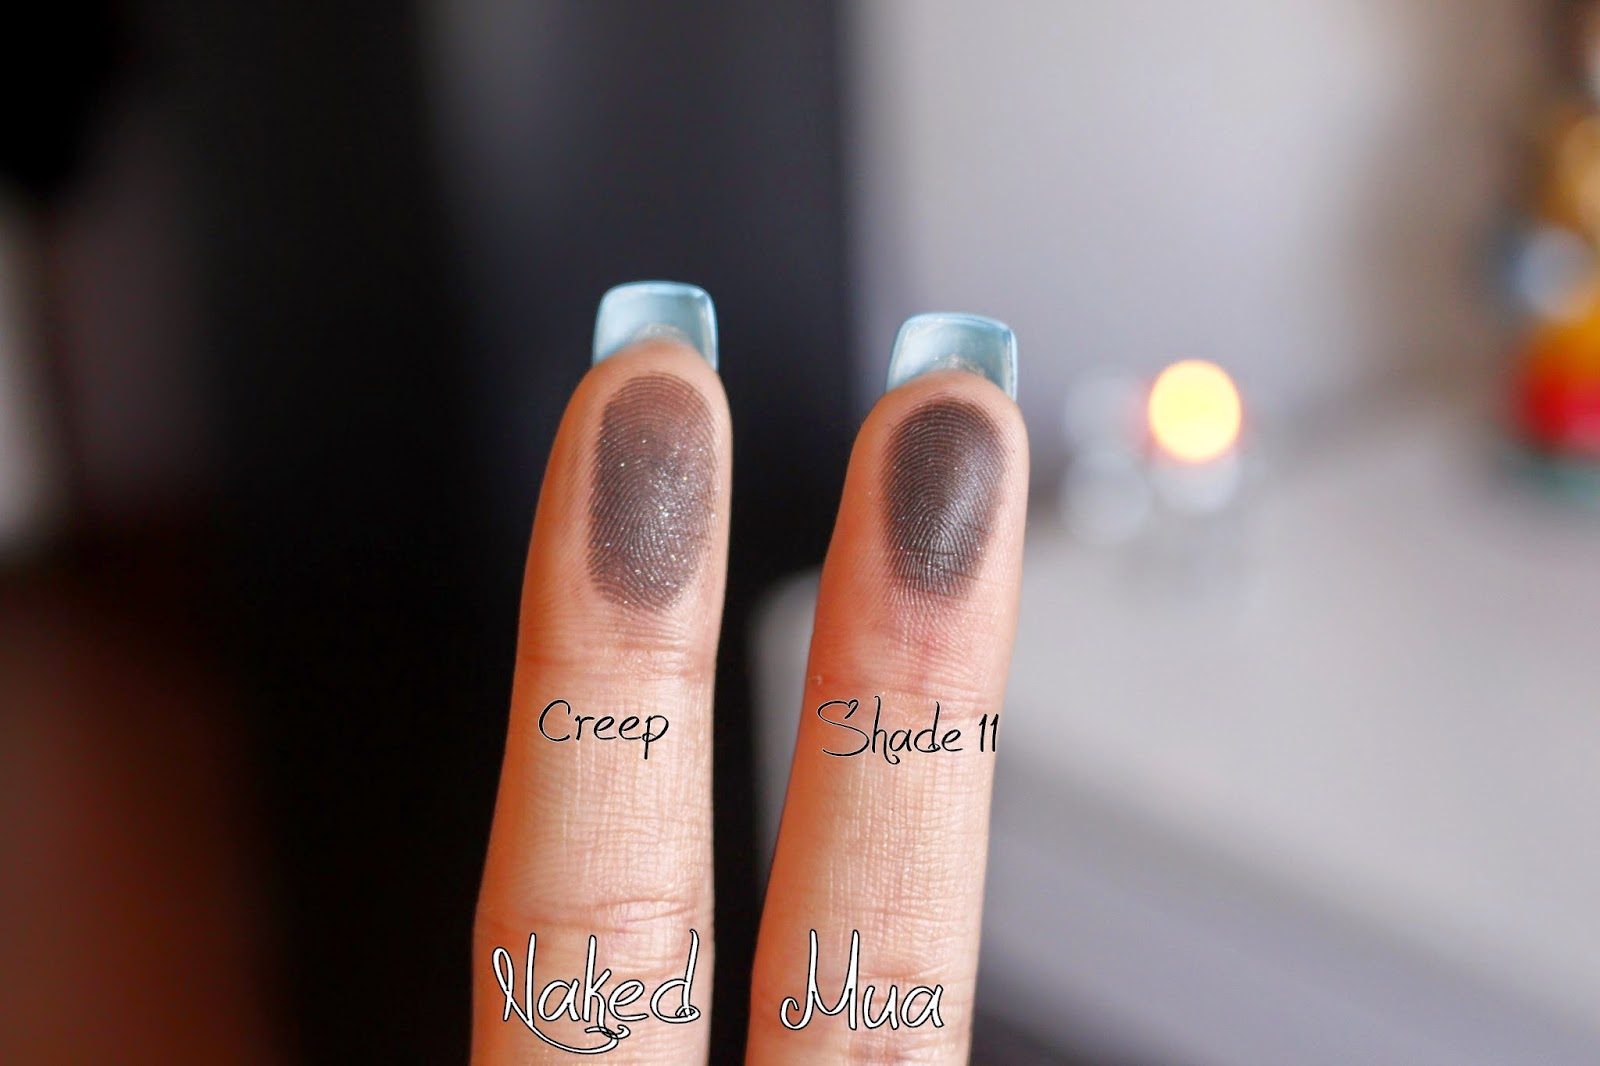 Naked Mua creep shade 11